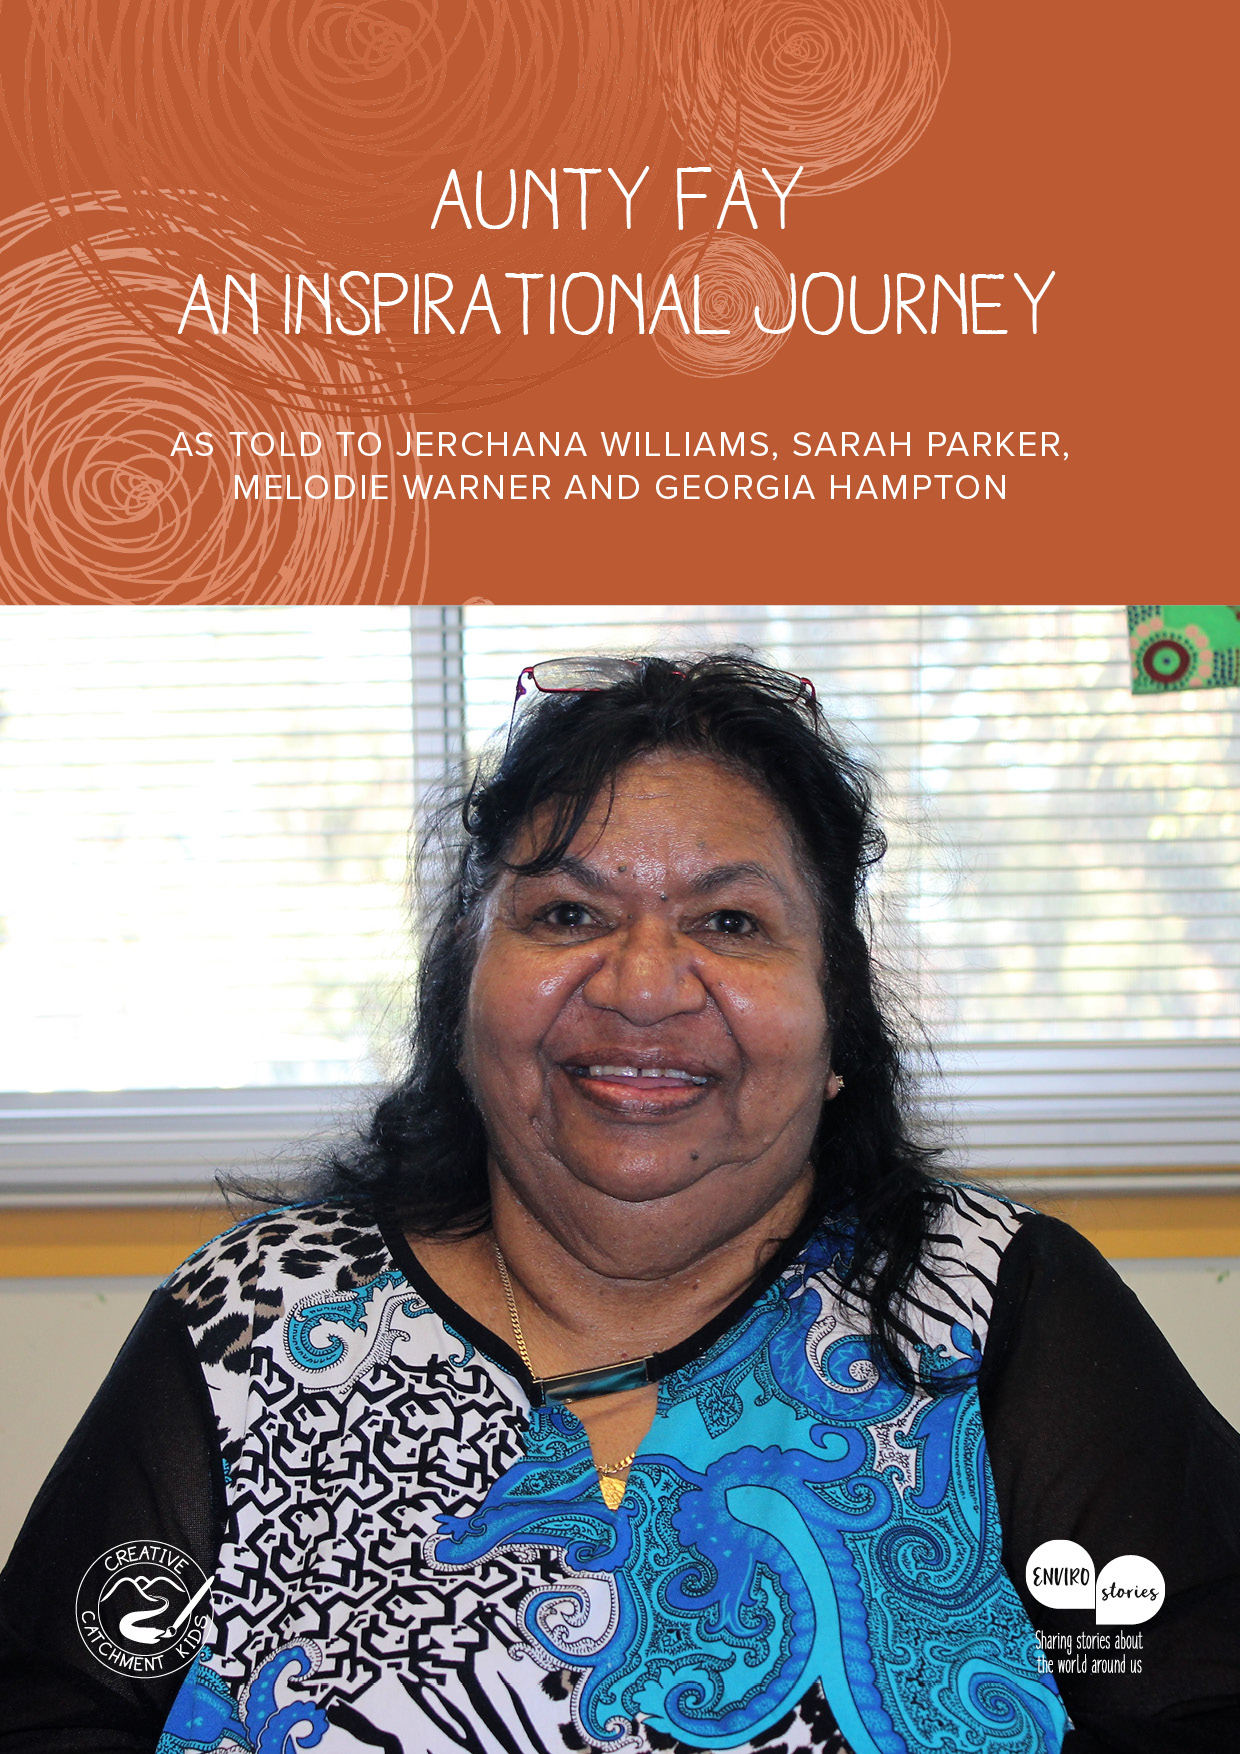 Aunty Fay An Inspirational Journey